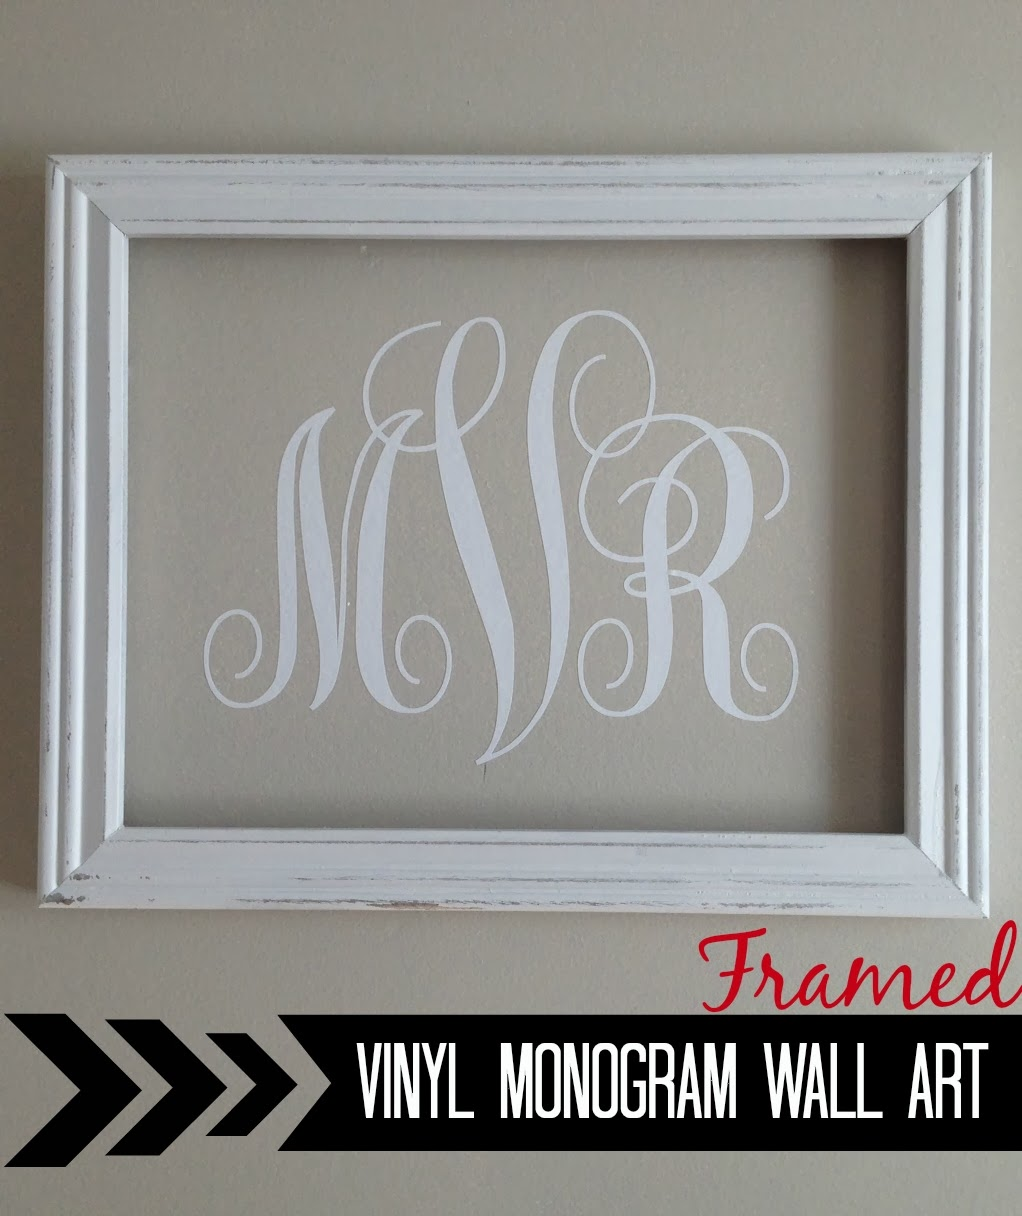 Monogram Wall Art silhouette} vinyl monogram wall art - silhouette school